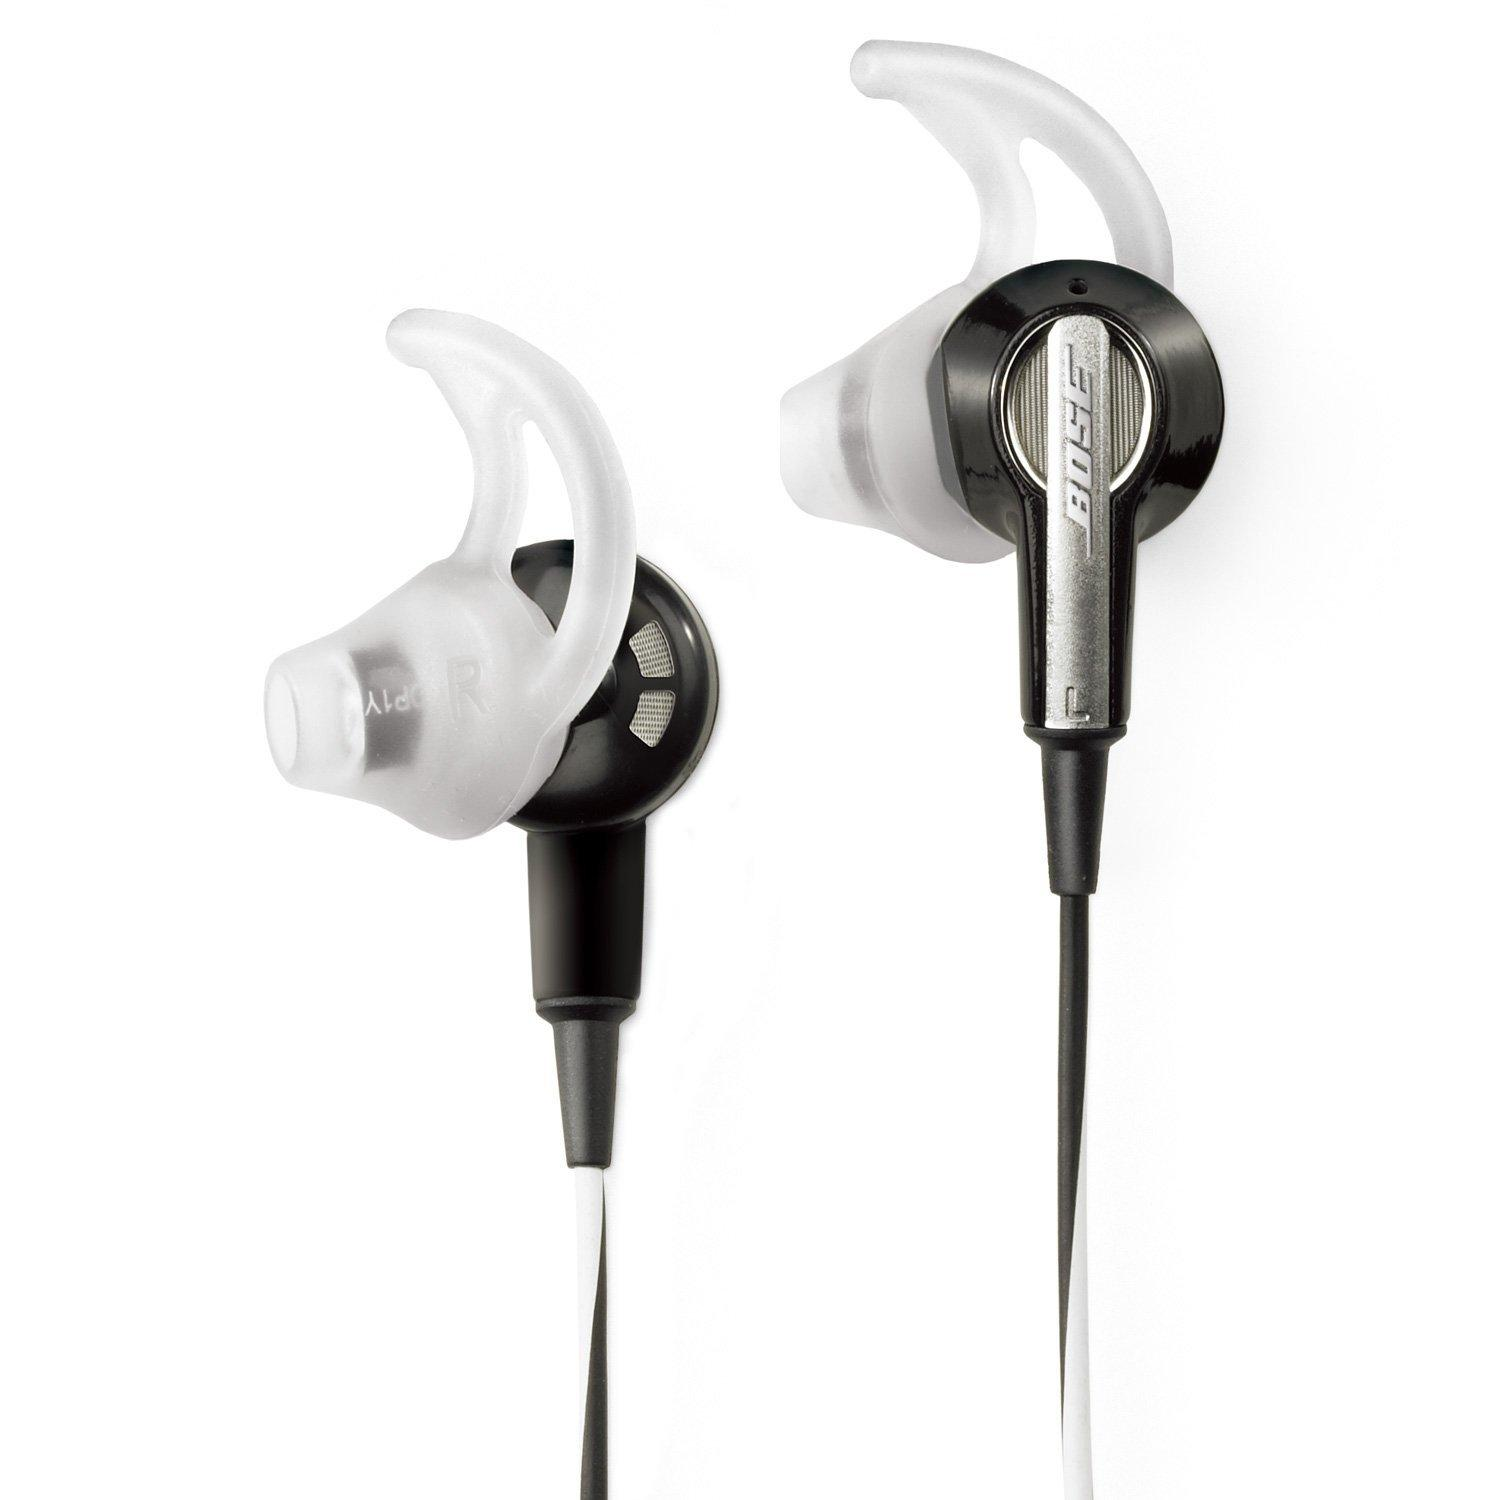 89.99Bose MIE2 3.5mm Corded Headset